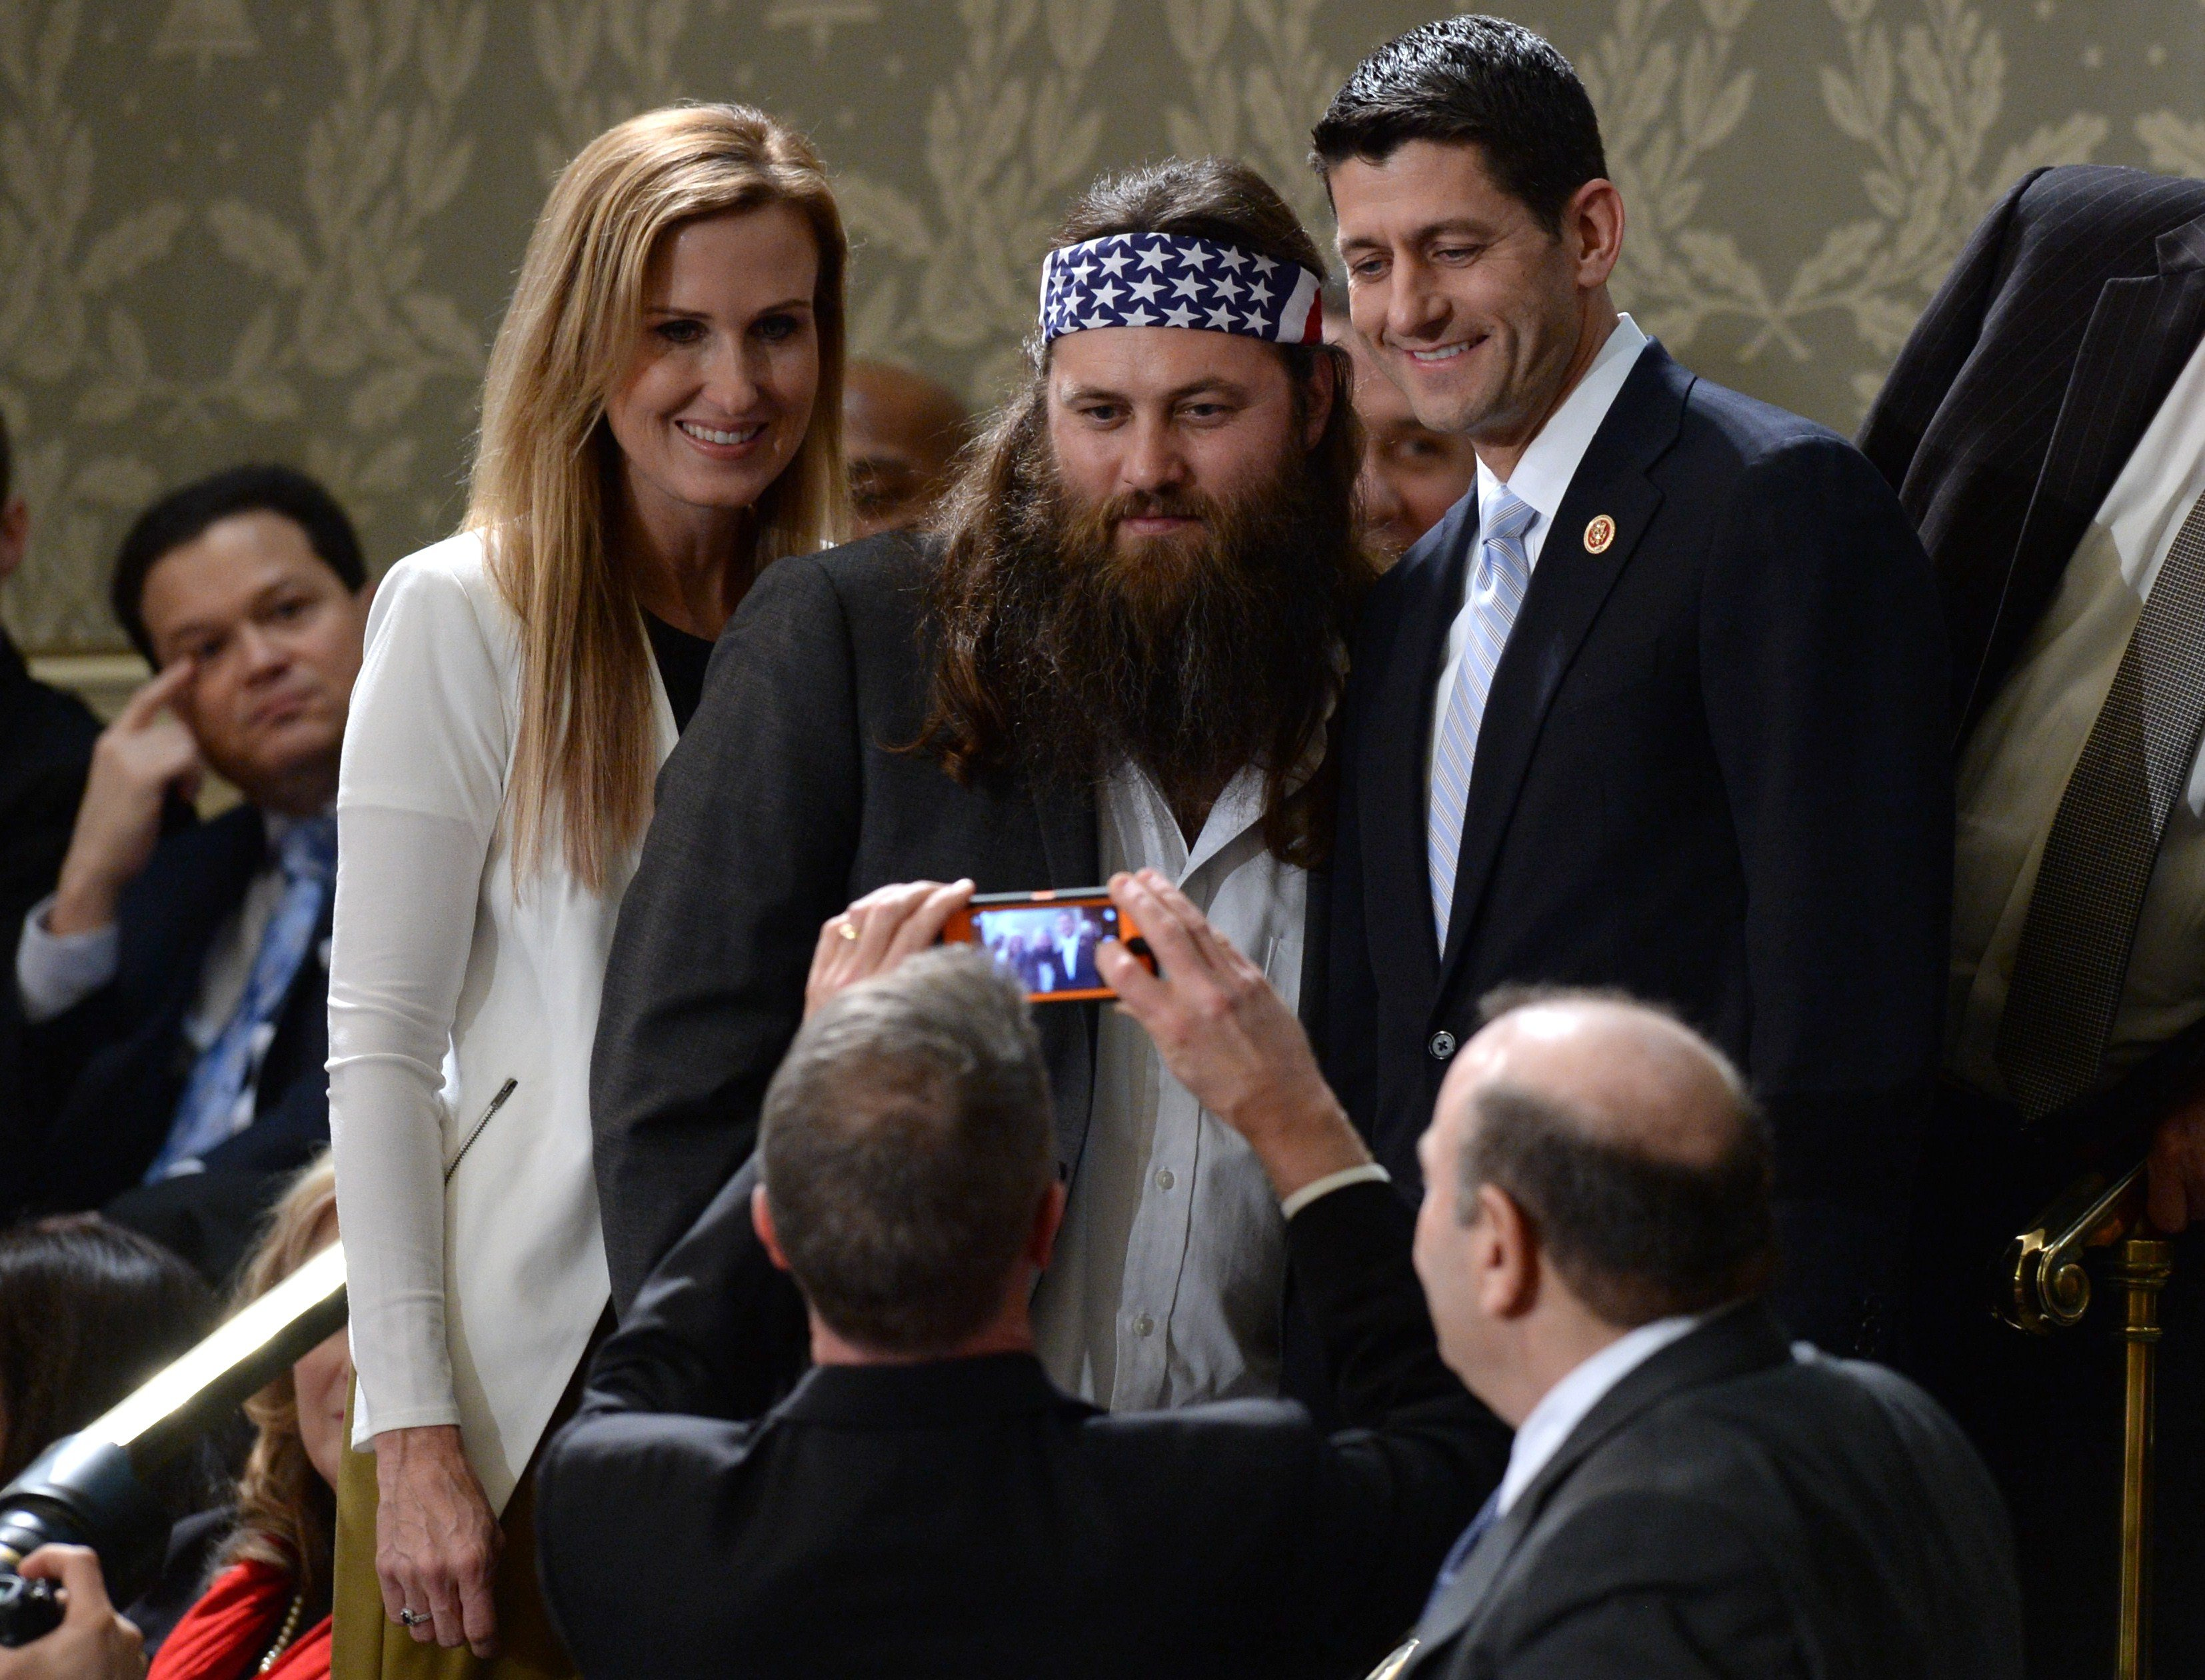 Willie Robertson of the television show Duck Dynasty and his wife Korie Robertson pose for a picture with Republican Representative from Wisconsin Paul Ryan.